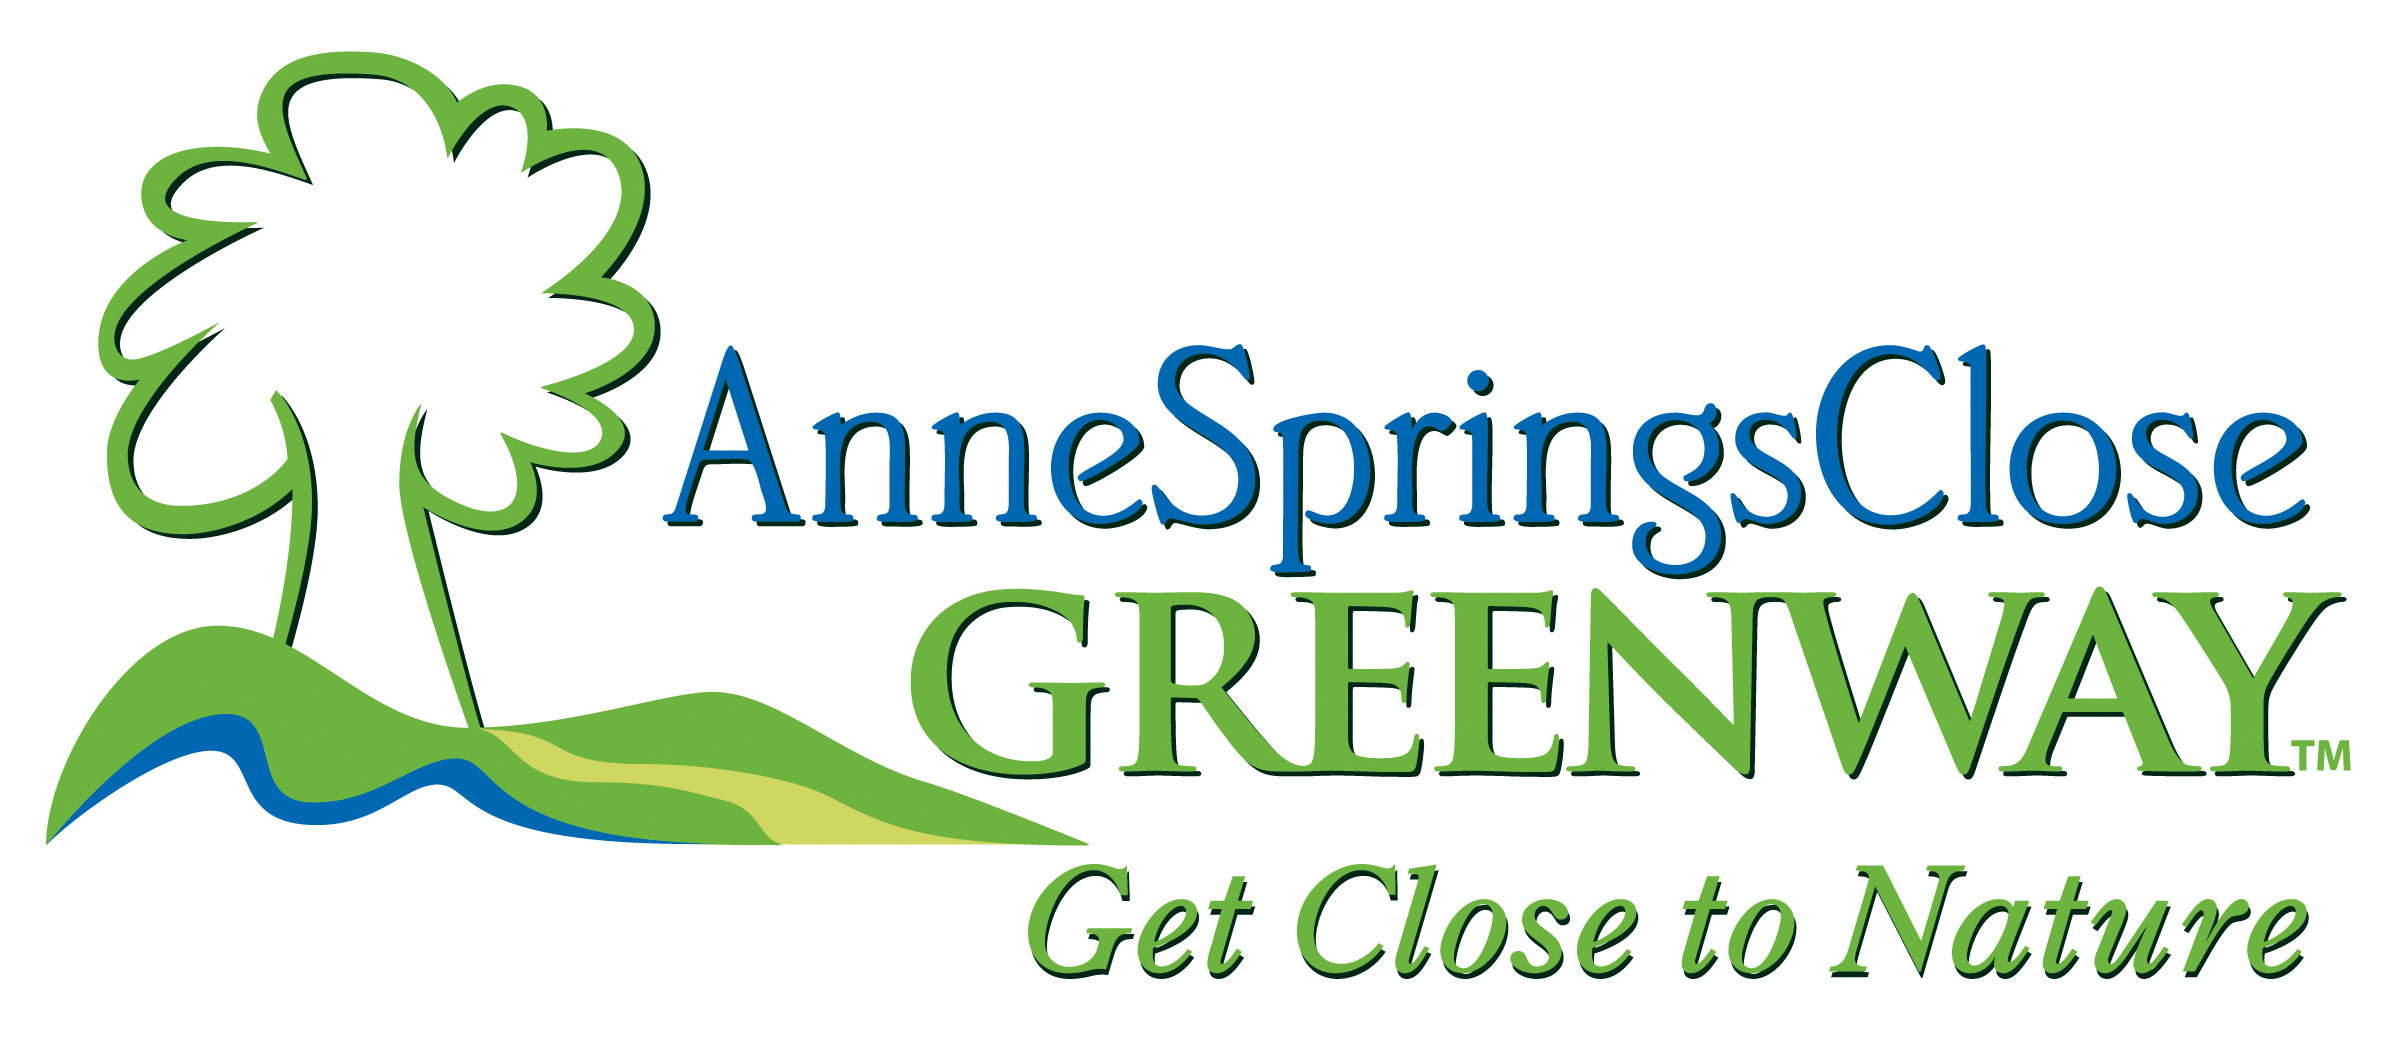 Anne Springs Close Greenway